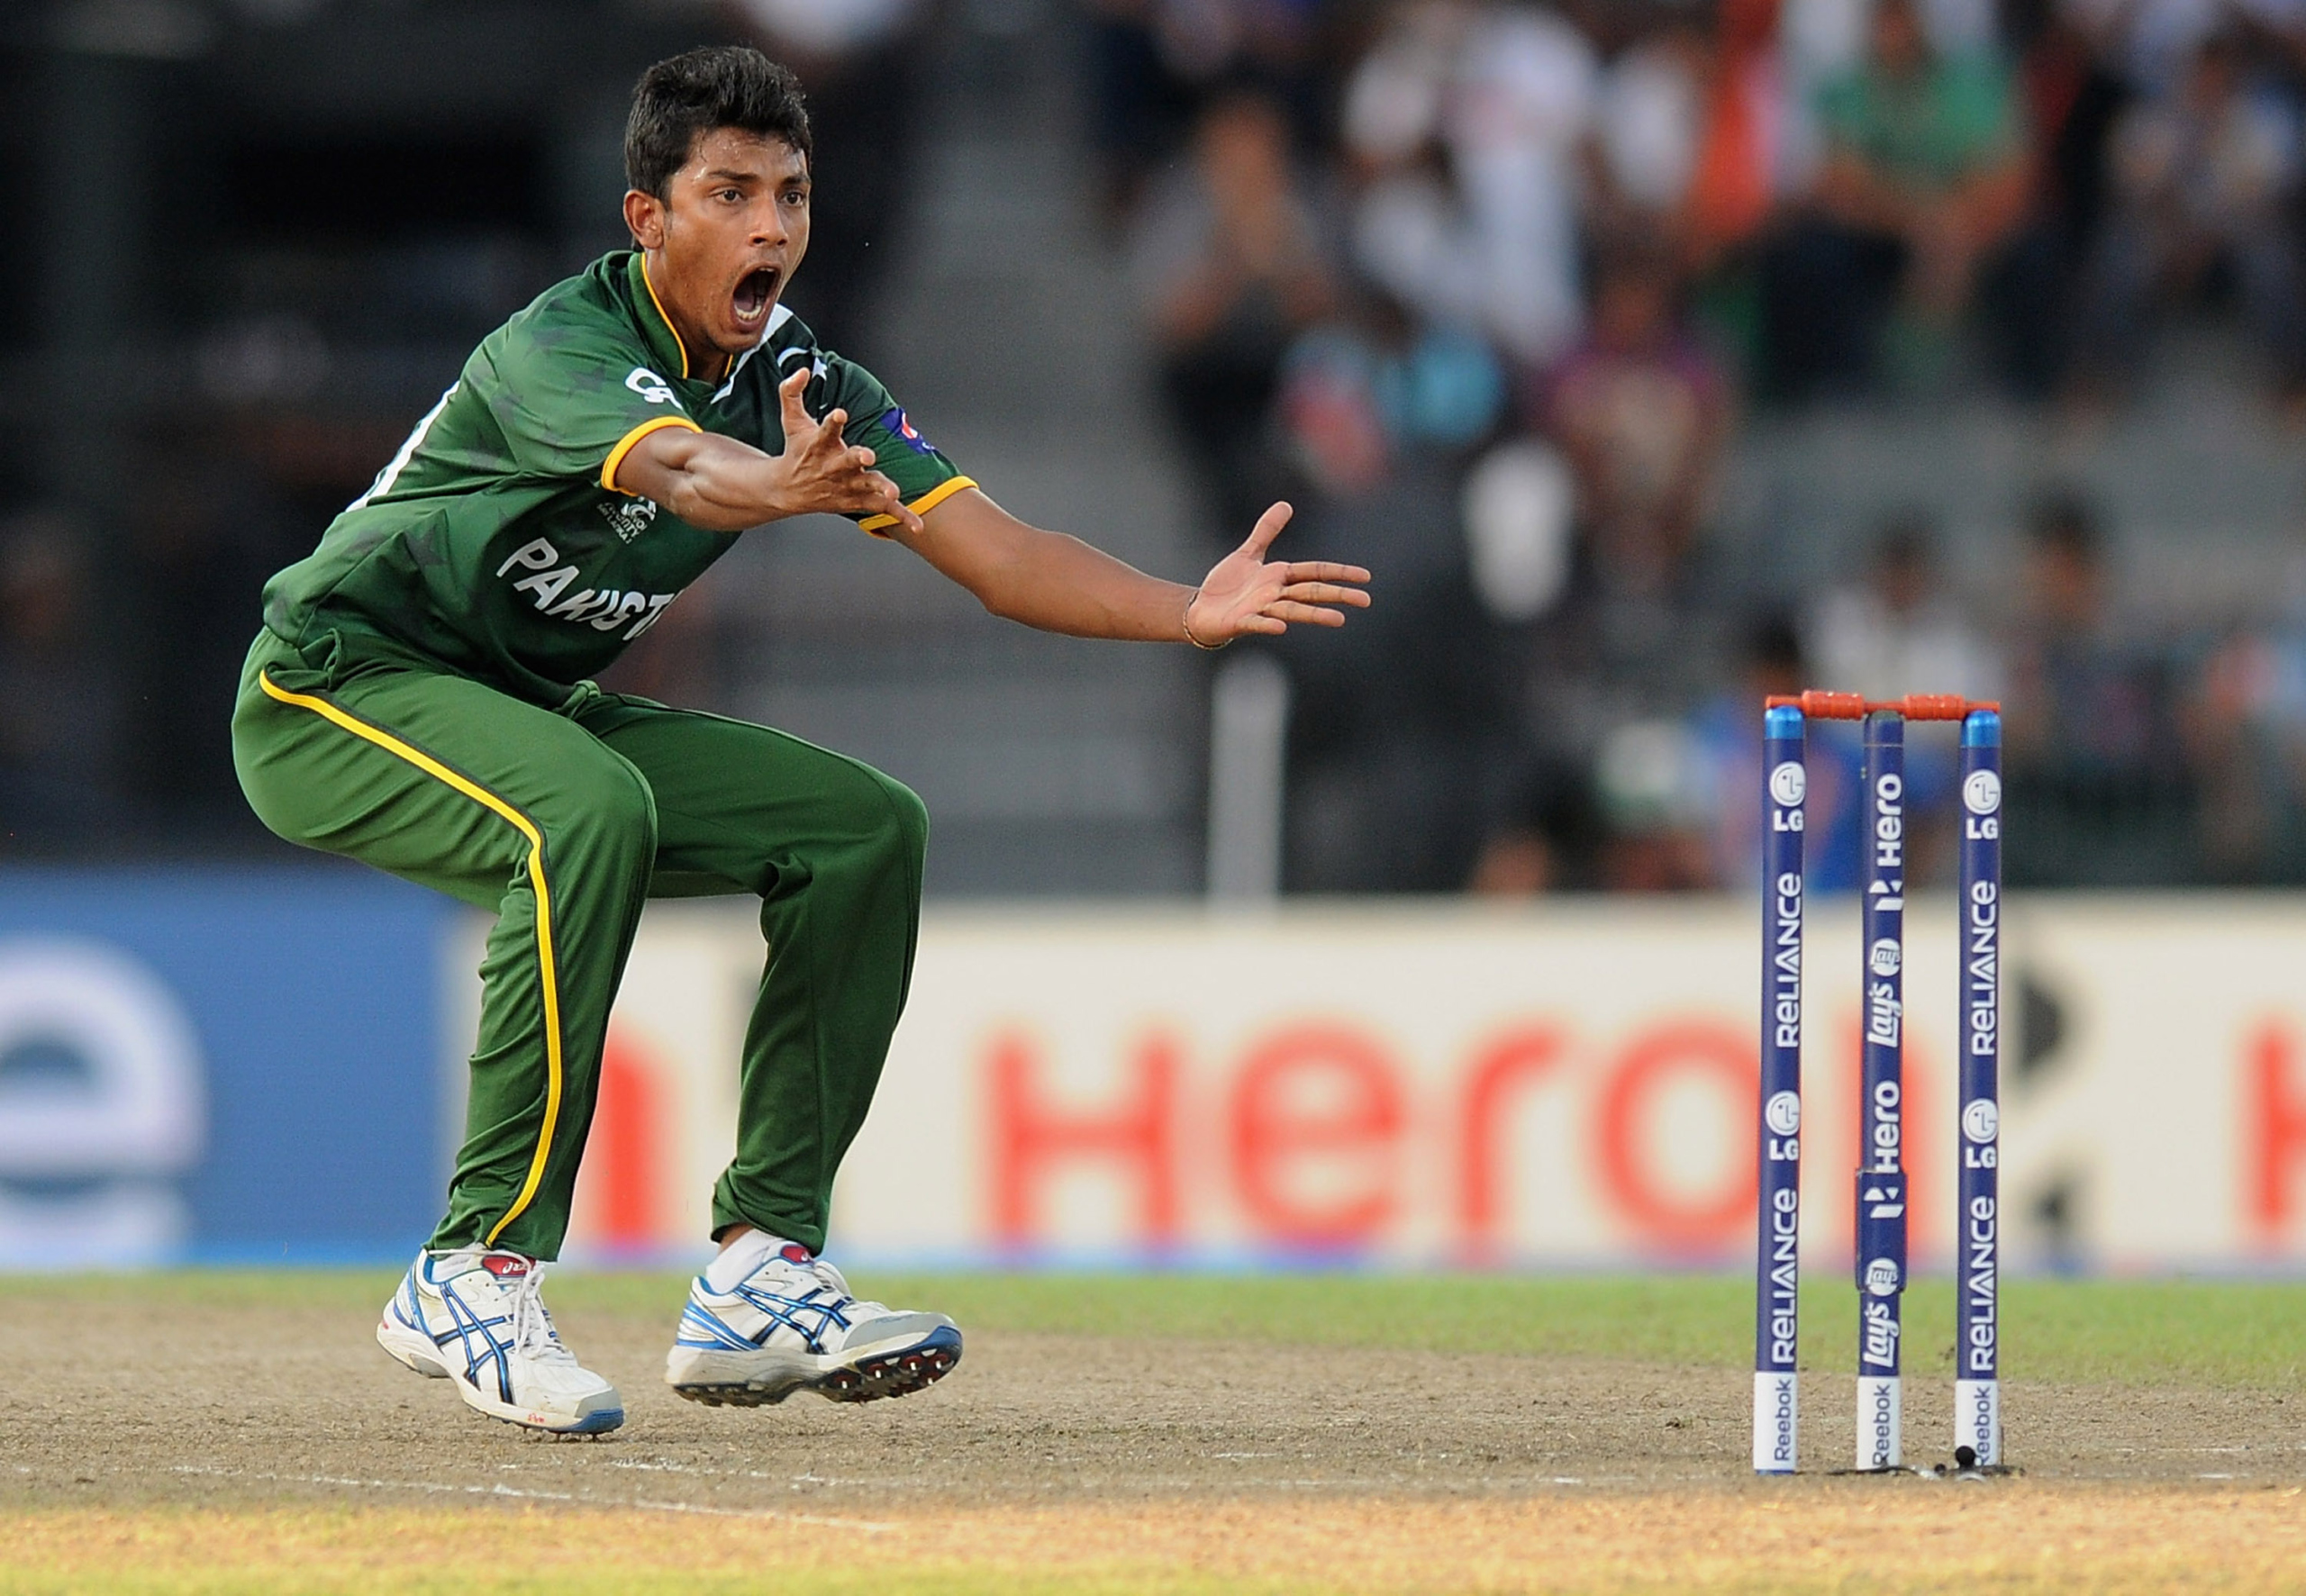 Quaid e Azam trophy: Raza Hasan sent home for breaching COVID-19 protocols